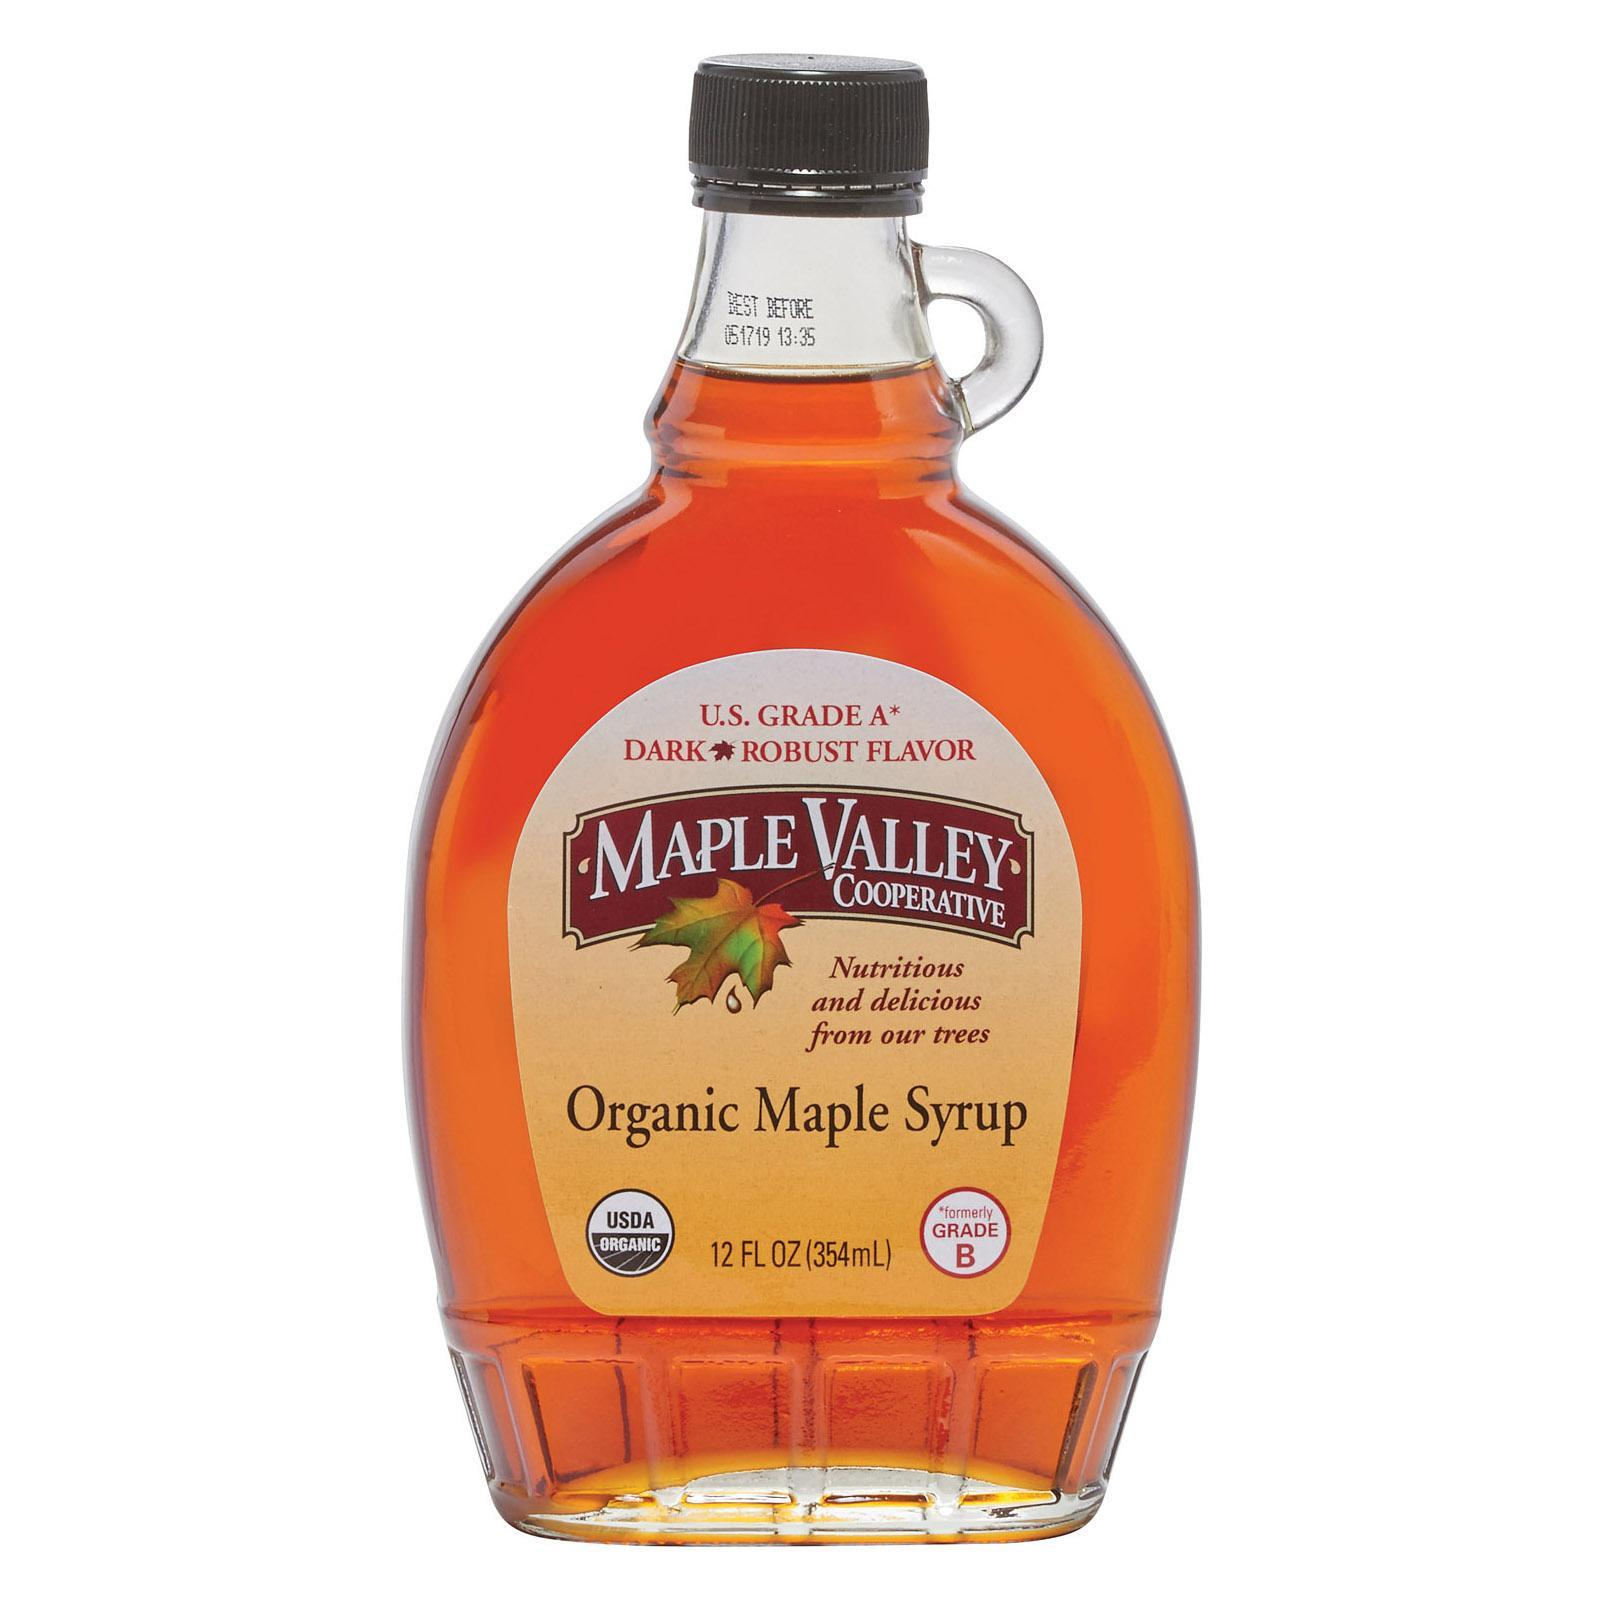 Maple valley cooperative organic maple syrup grade b